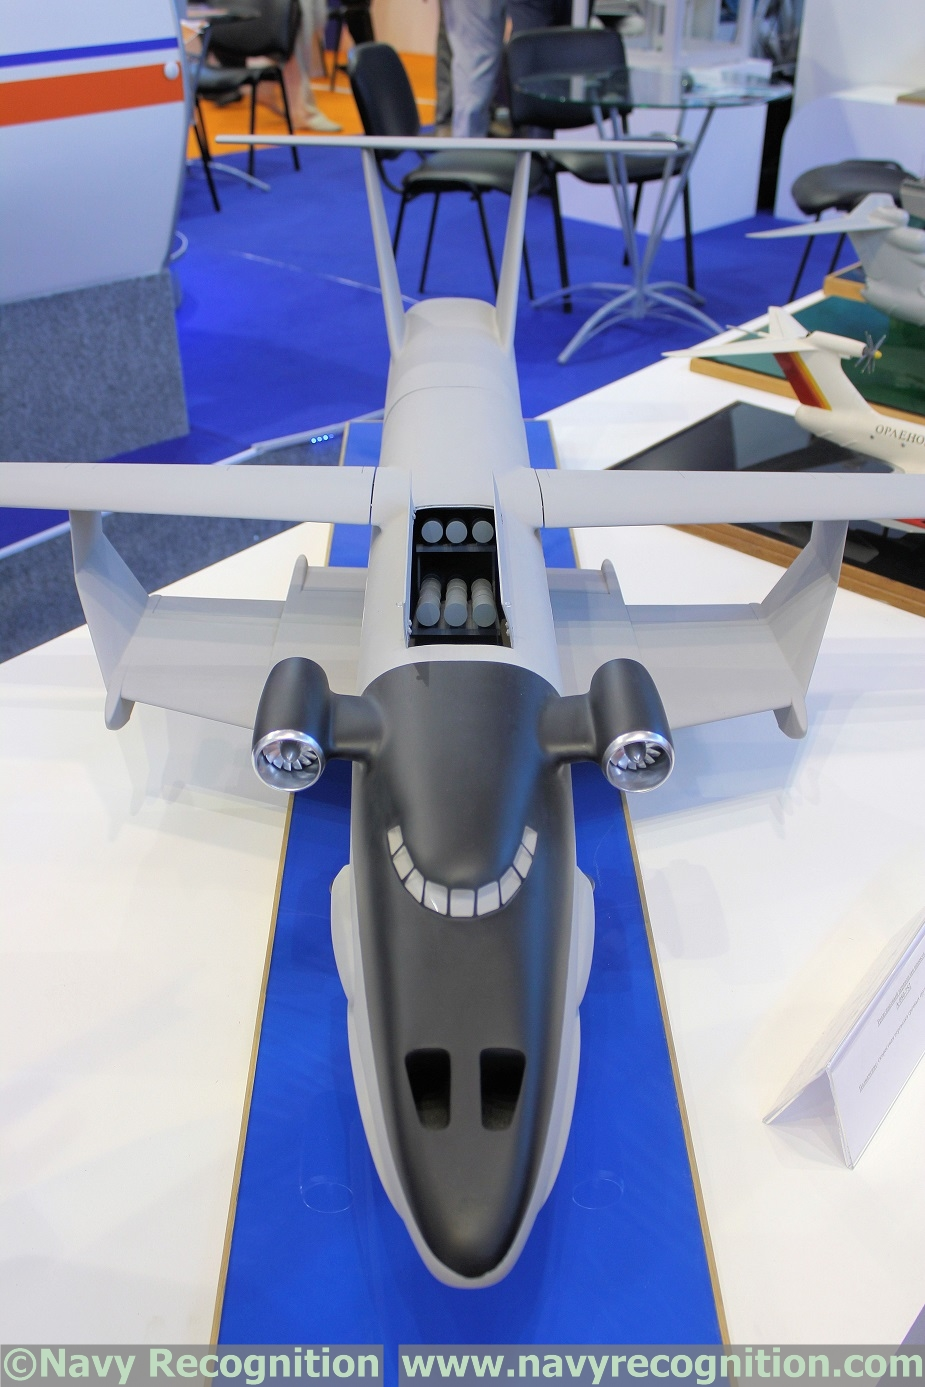 https://www.navyrecognition.com/images/stories/news/2018/august/Russia_to_create_missile-armed_surface-effect_craft_prototype_by_2027_2.JPG